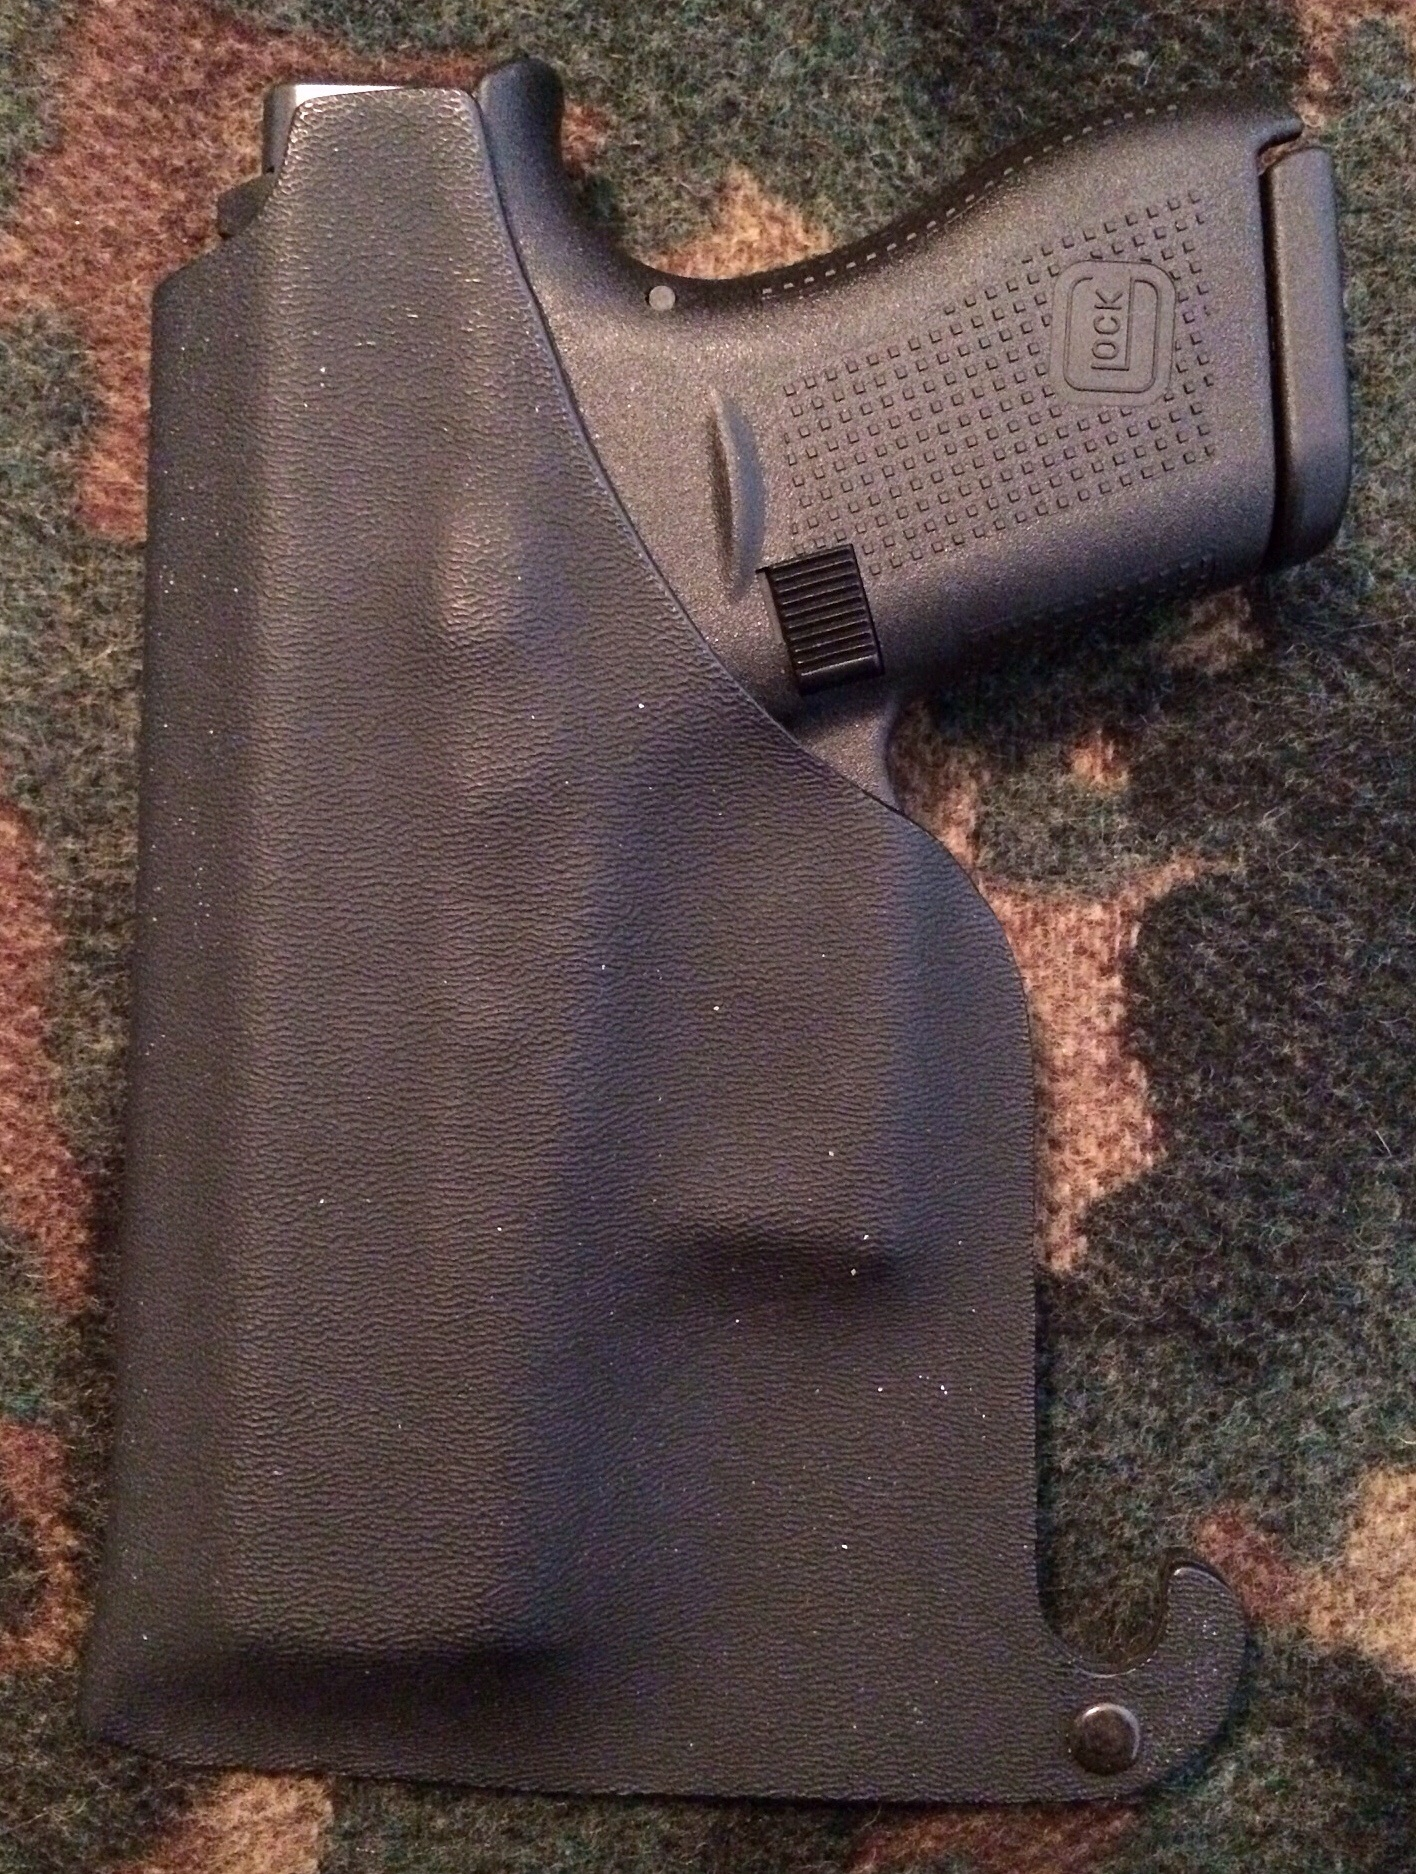 G42 in condition 3…any reason to use a holster? - Page 2